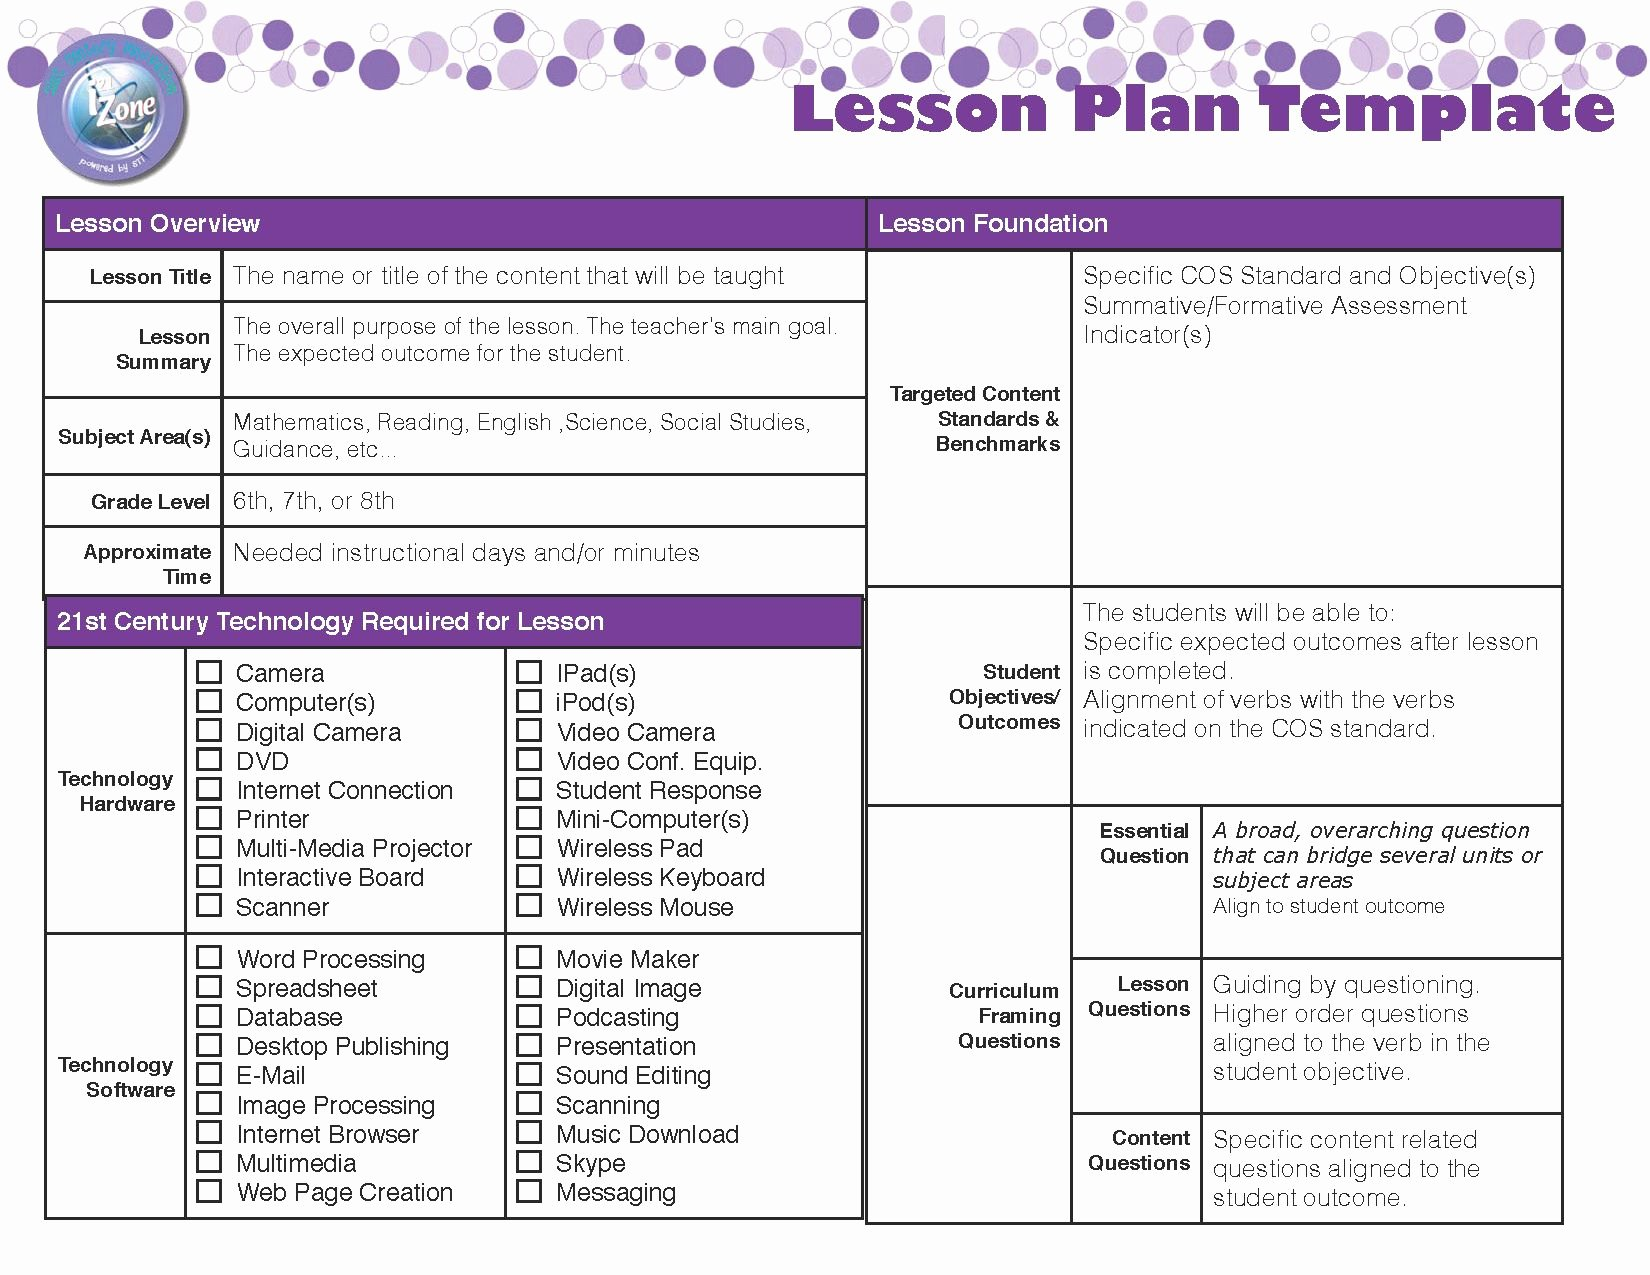 Best Lesson Plan Template Fresh Lesson Plan Template